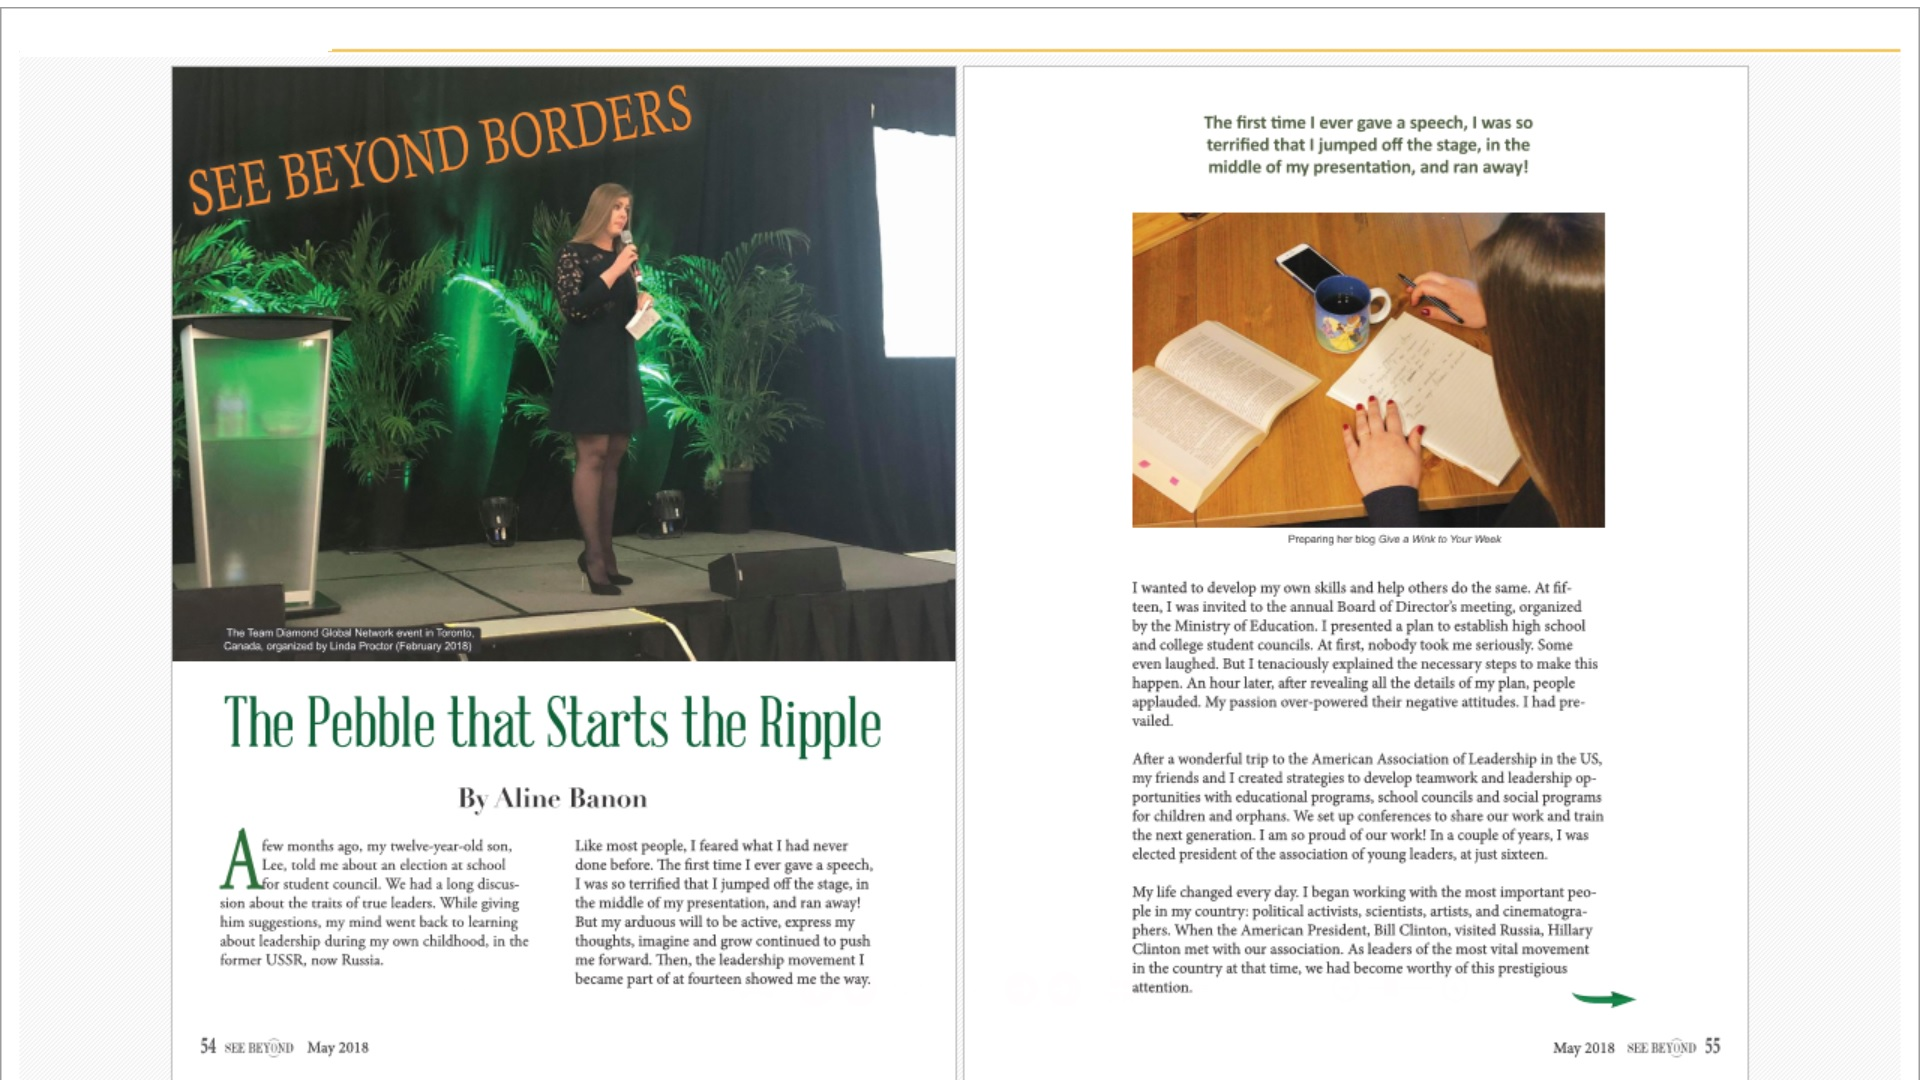 See Beyond Borders May 2018 article pic 1 2  pages.jpg